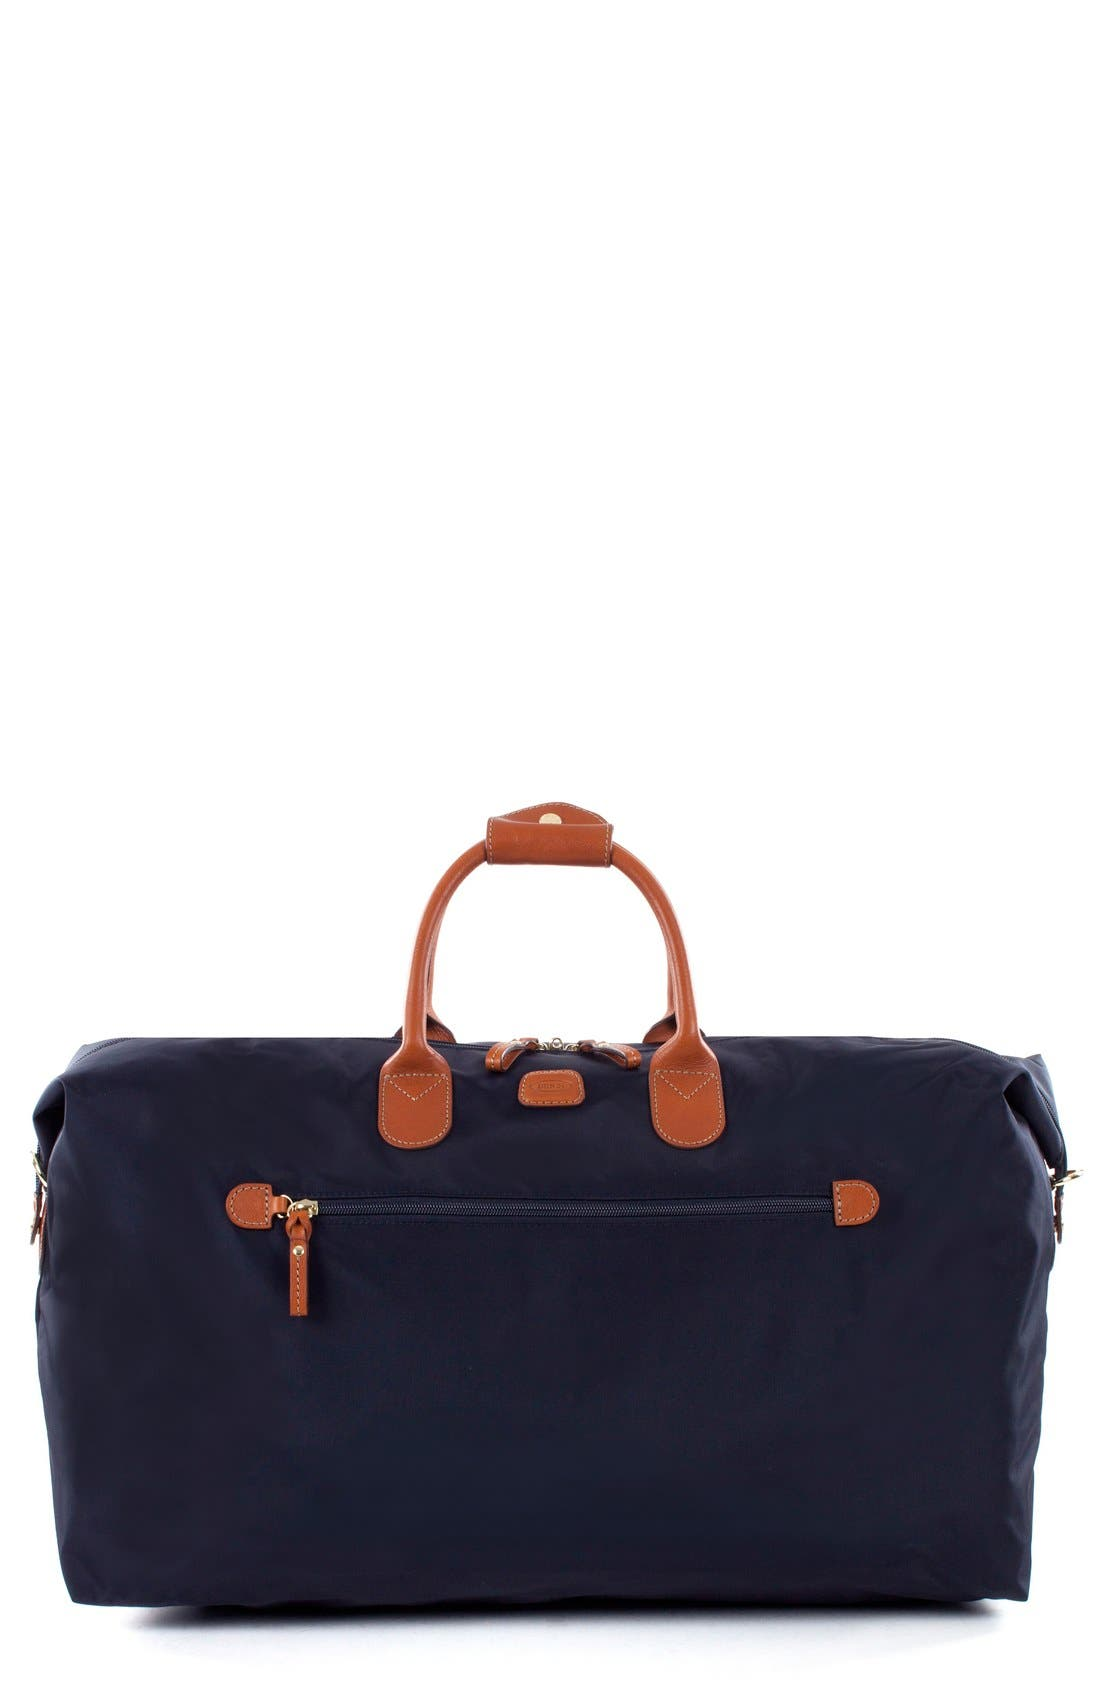 BRICS X-Bag Deluxe Duffel Bag